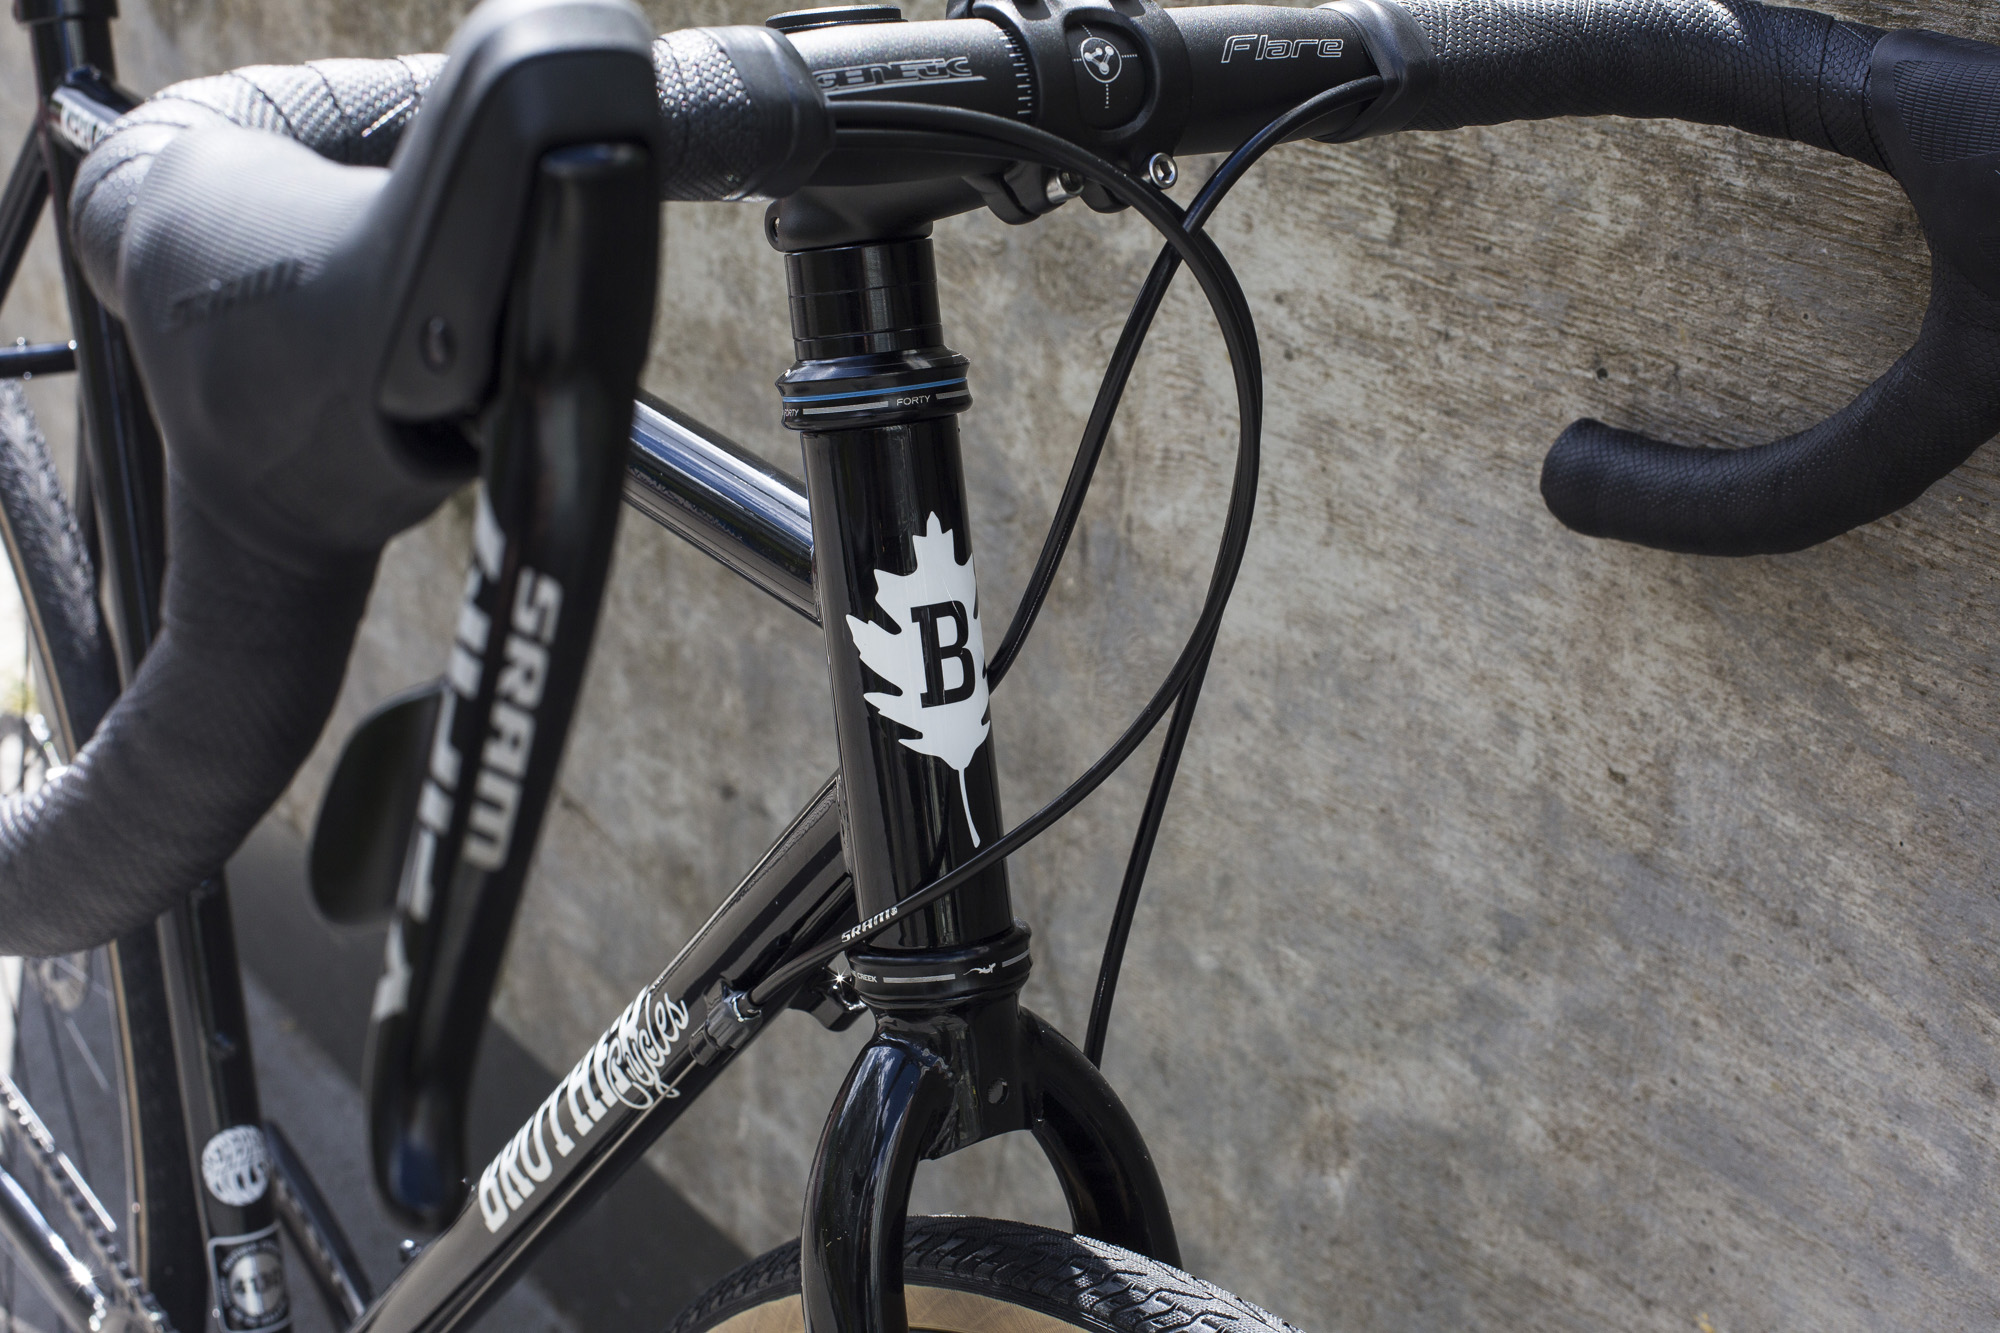 seabass-cycles-instore-bikes-25-april-2019-brother-cycles-kepler-disc-complete-black-5197.jpg